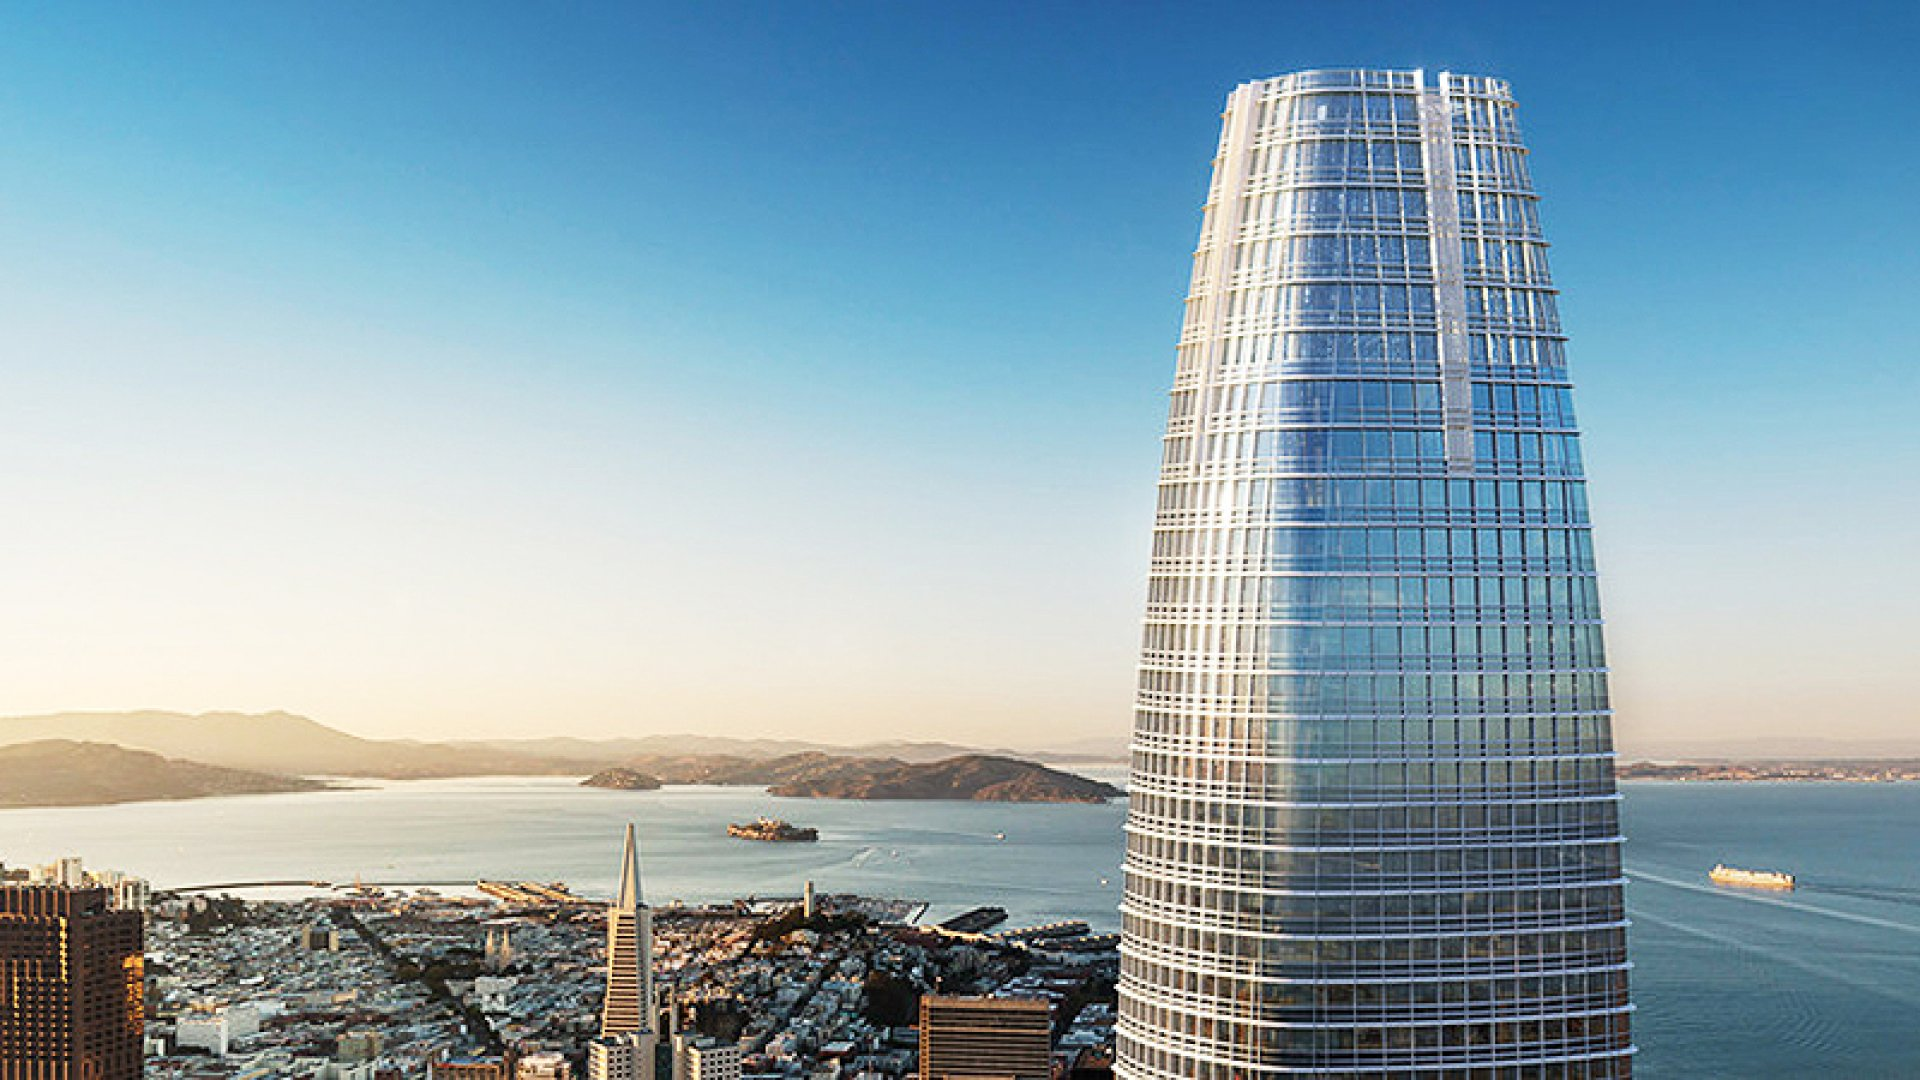 Marc Benioff on Why He's Leaving the Top Floor of New Salesforce Tower Empty